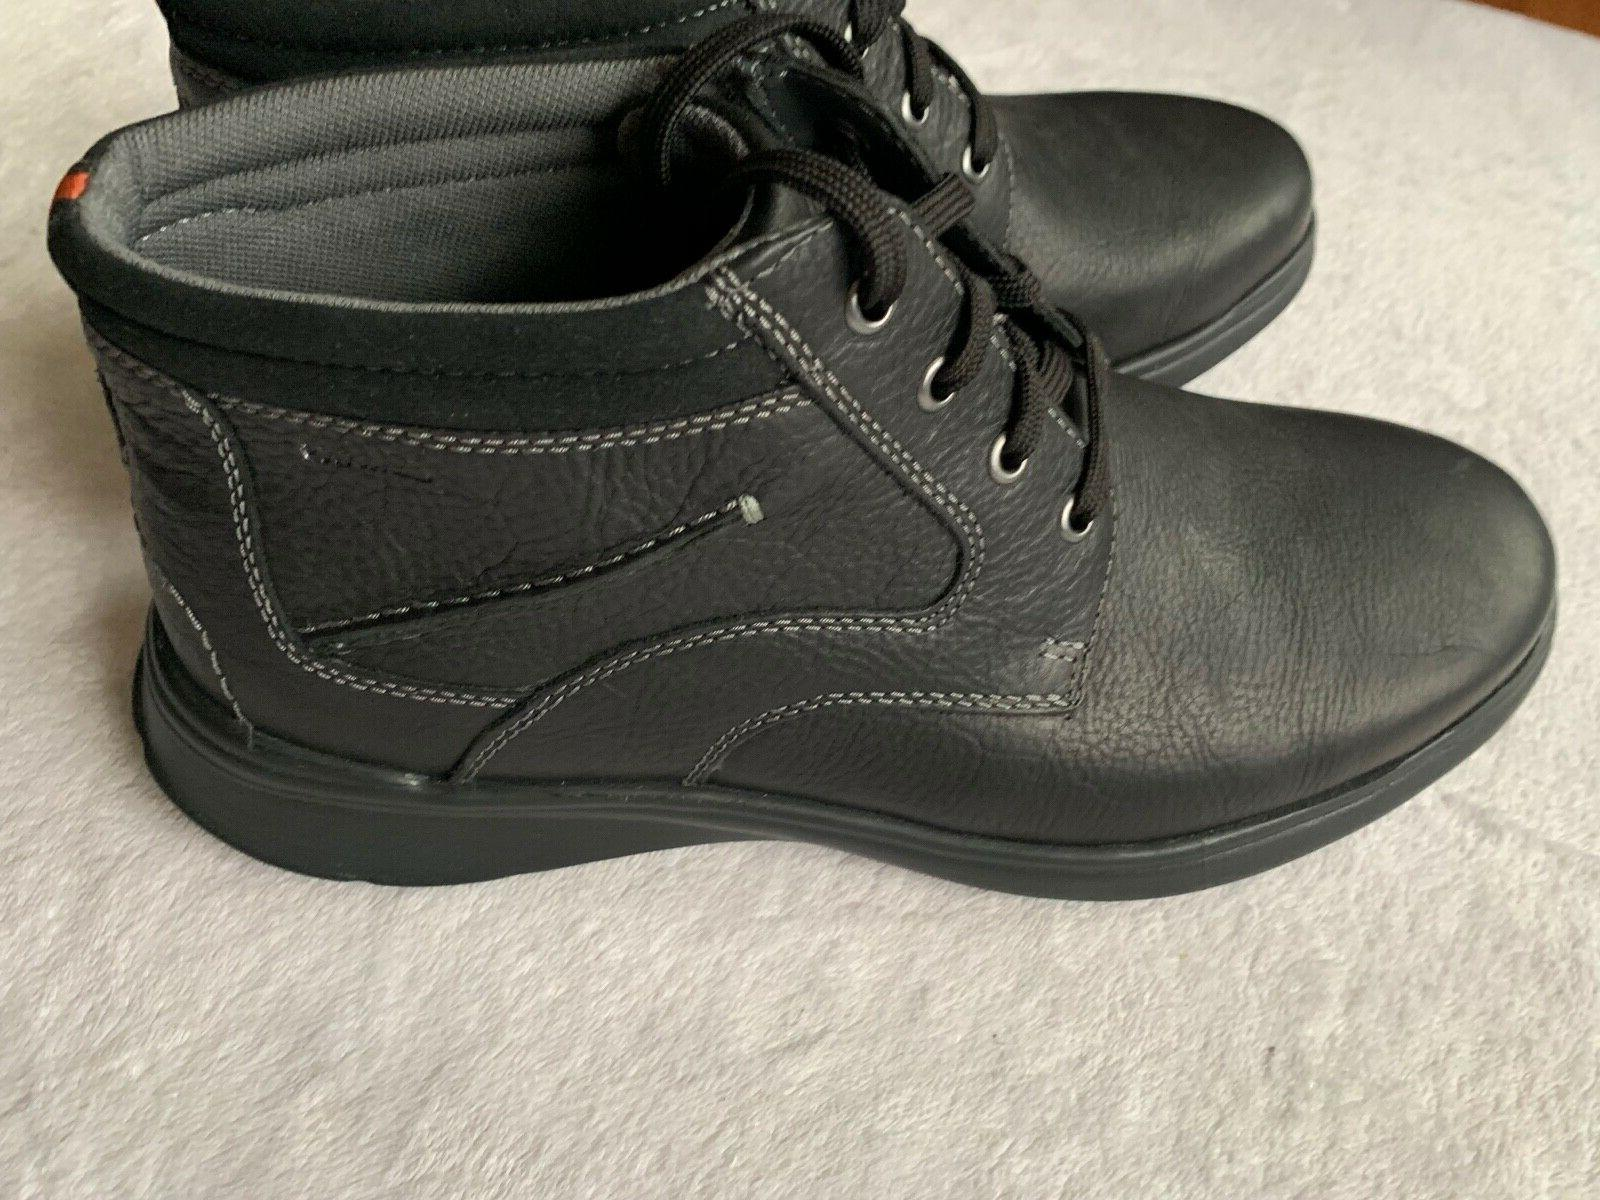 NWT RISE MEN'S CASUAL LIGHTWEIGHT BOOTS: